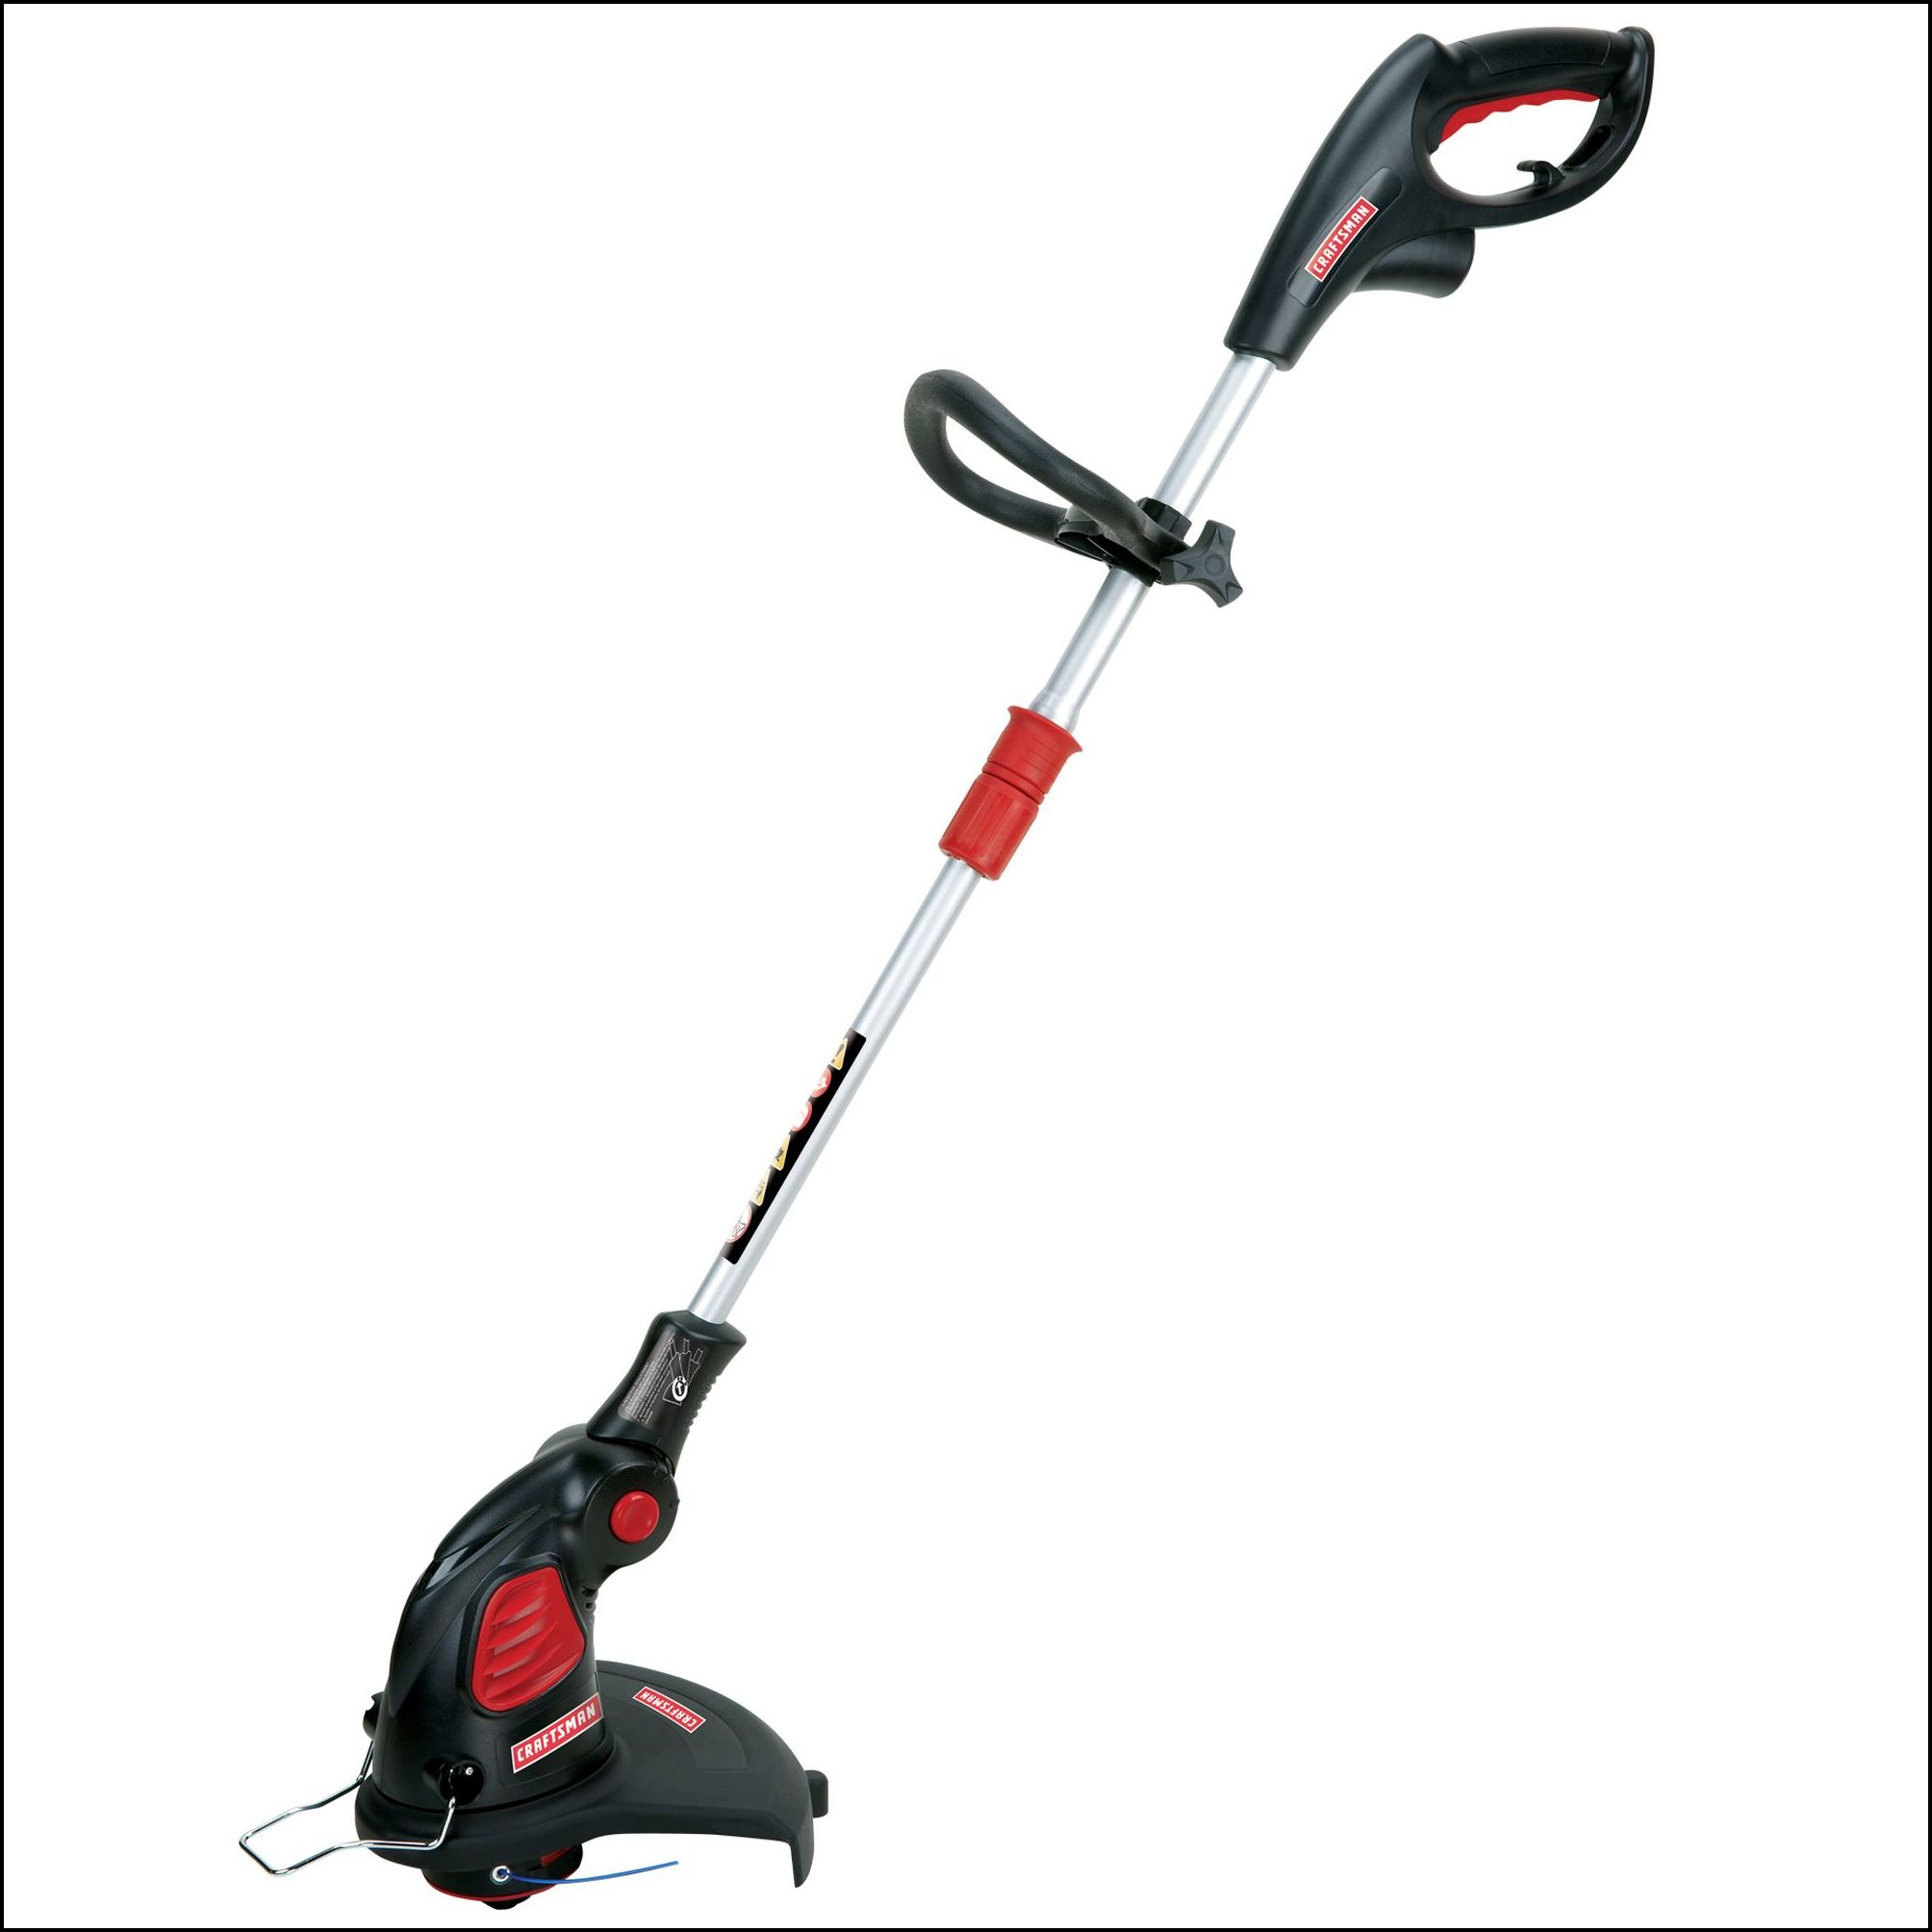 Craftsman Electric Weed Eater